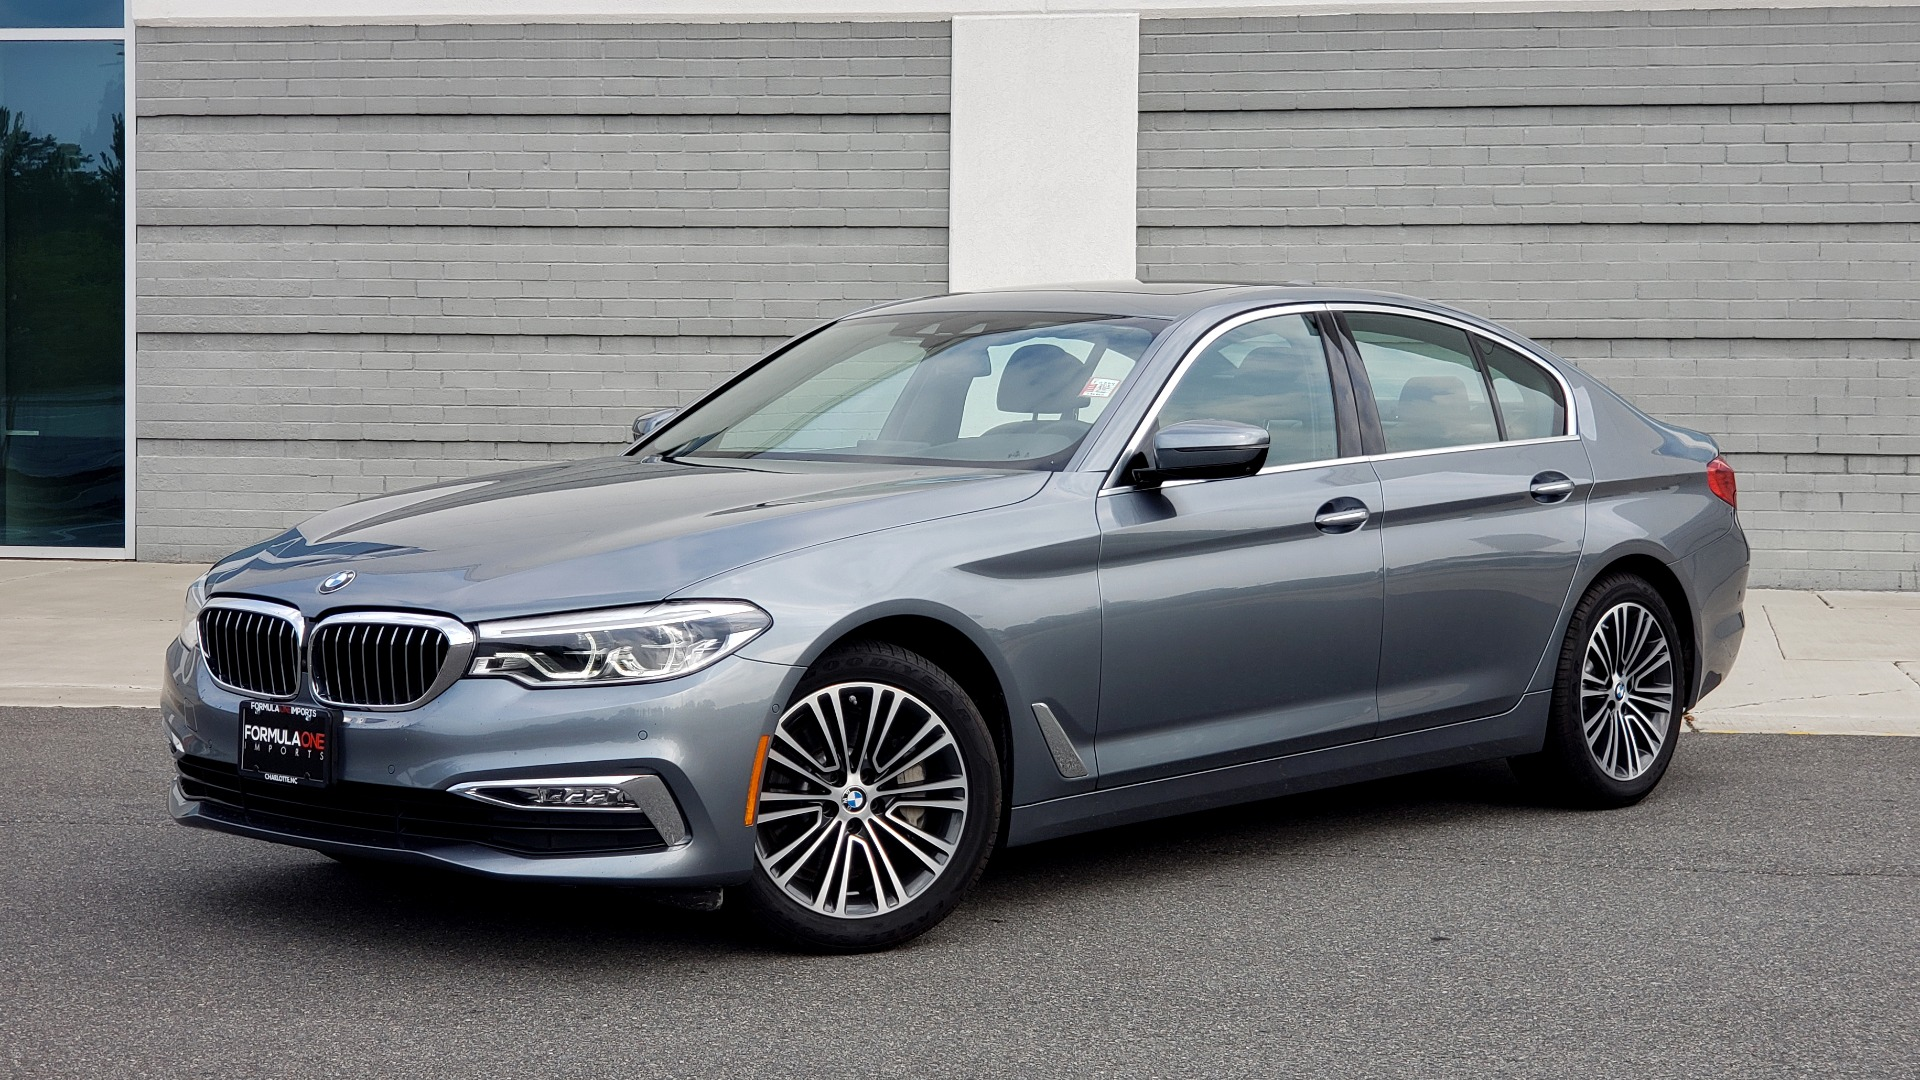 Used 2018 BMW 5 SERIES 540I XDRIVE PREMIUM / EXECUTIVE / LUXURY / H/K SND / REMOTE CONTROL PARKING for sale $40,995 at Formula Imports in Charlotte NC 28227 1